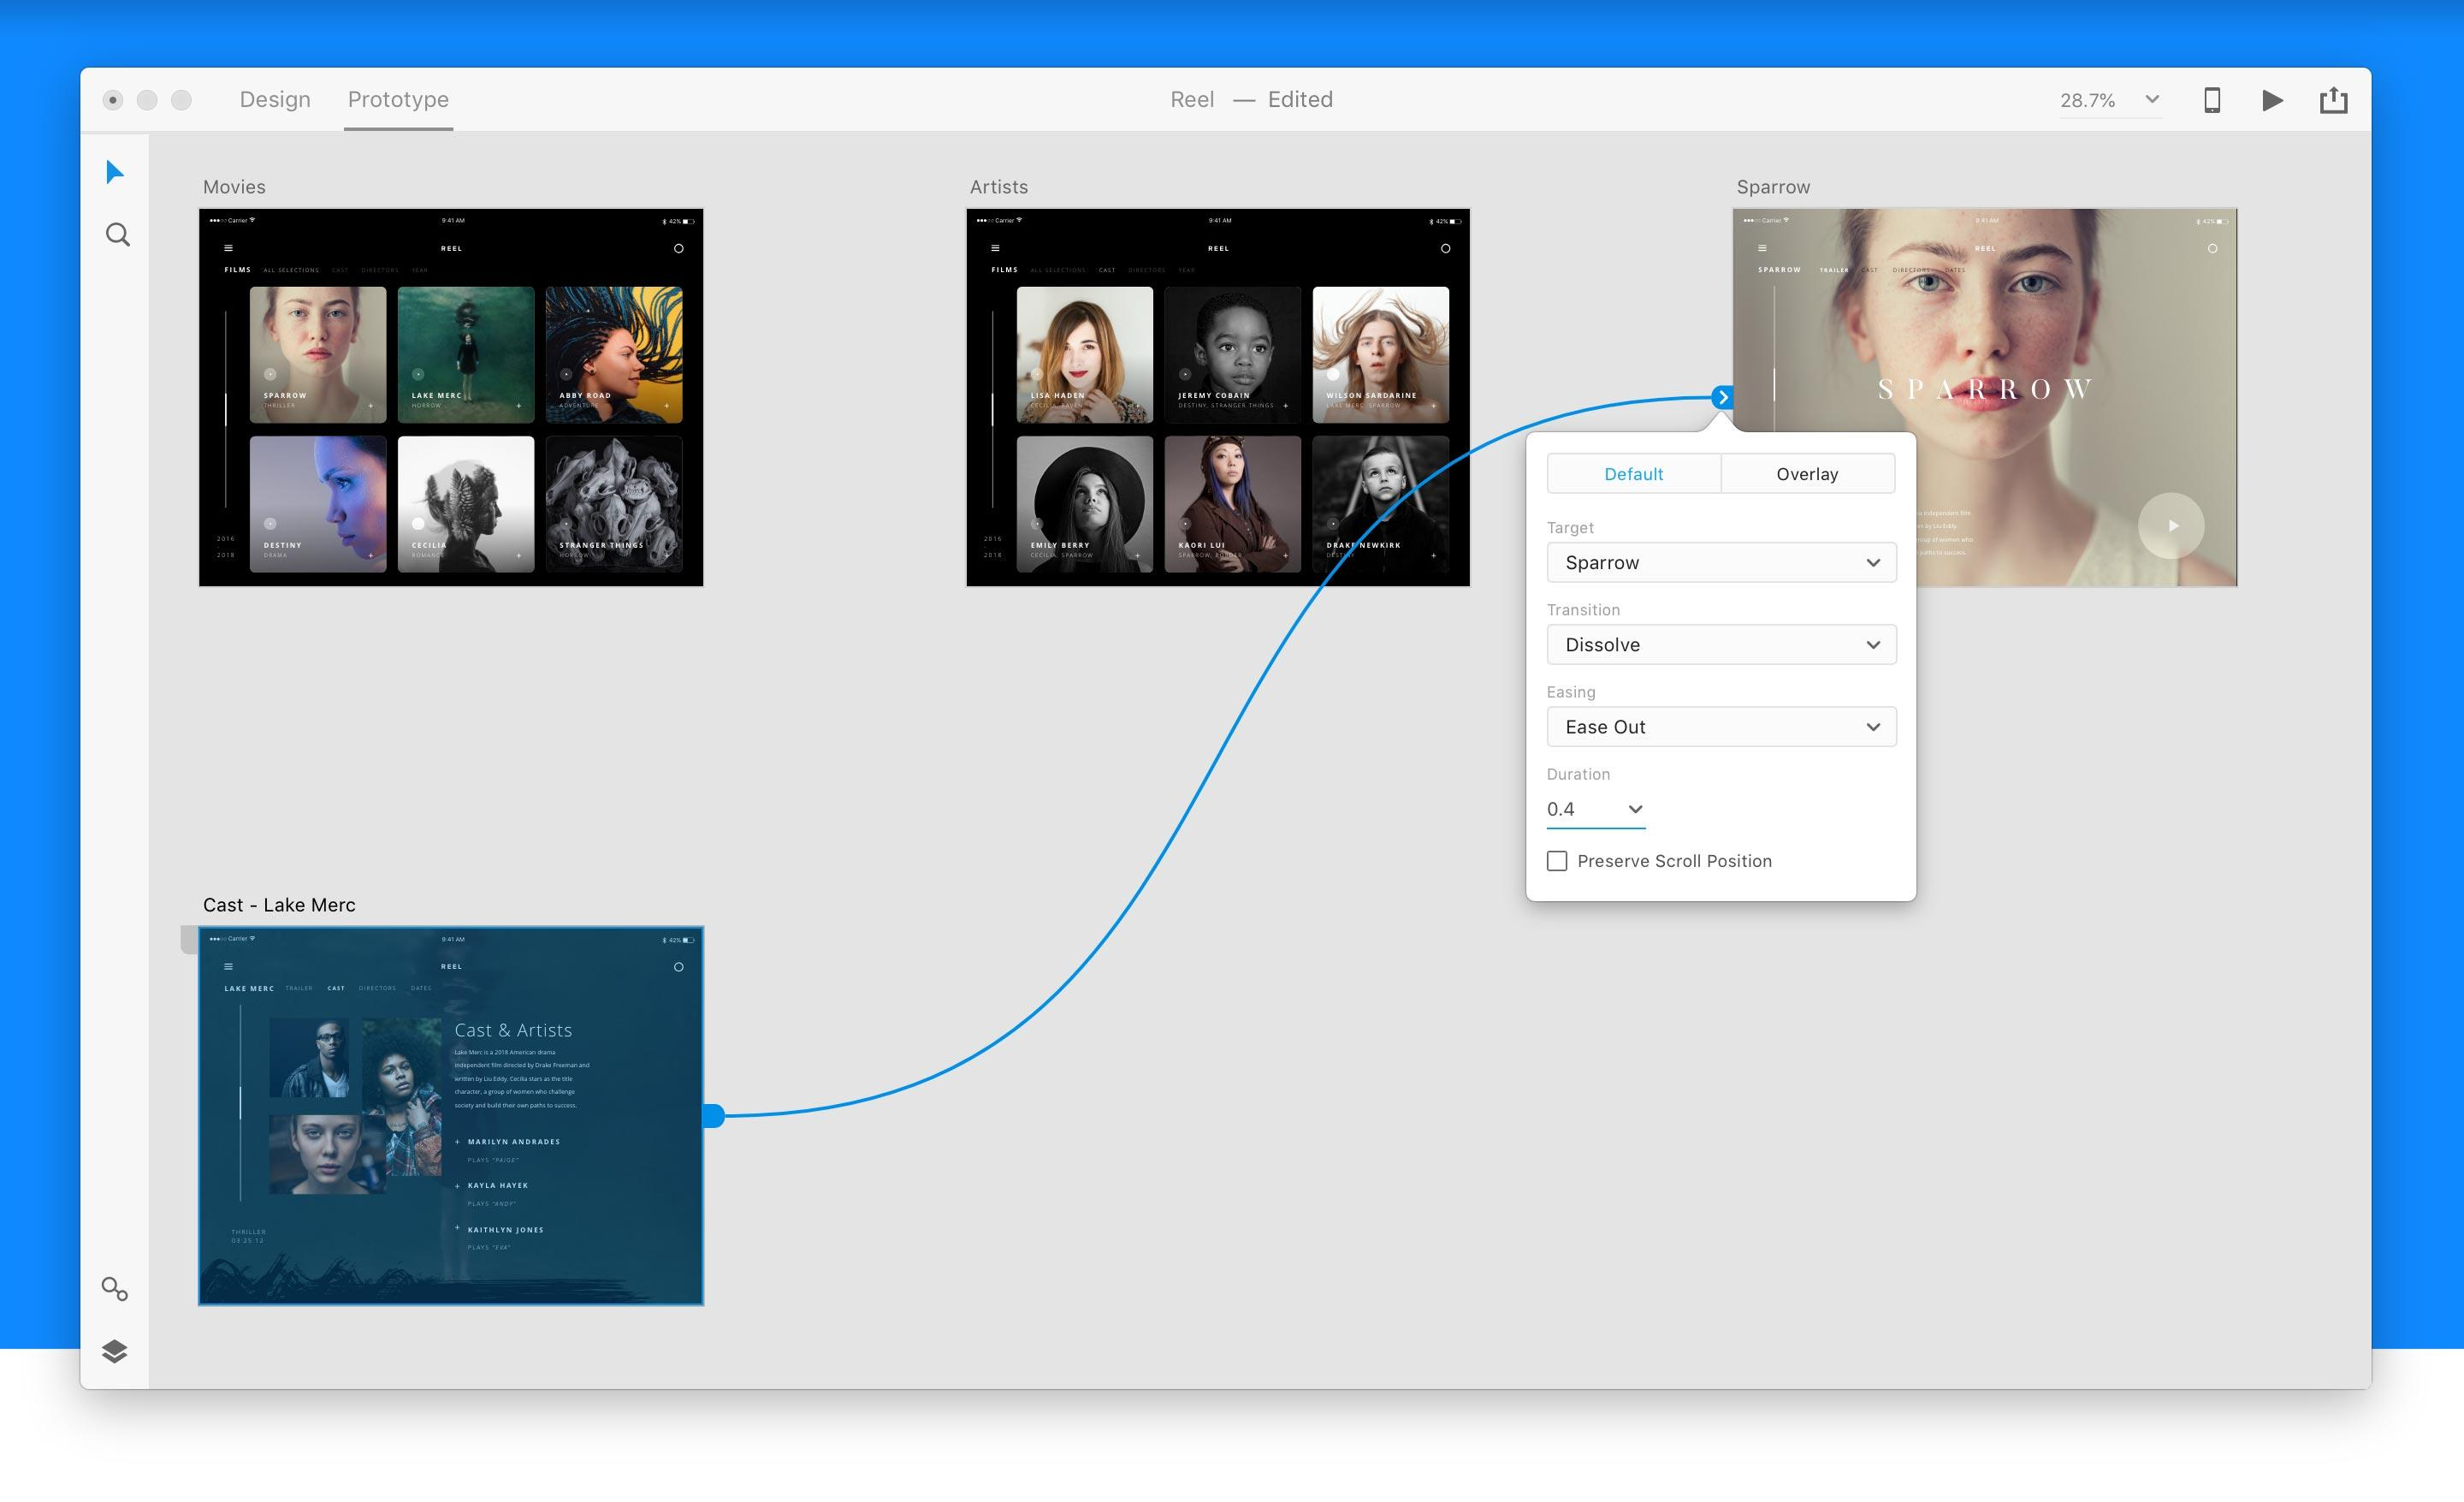 Adobe XD lets designers not just determine the visual look of a website or mobile app but also the flow people will experience as they tap buttons or links.